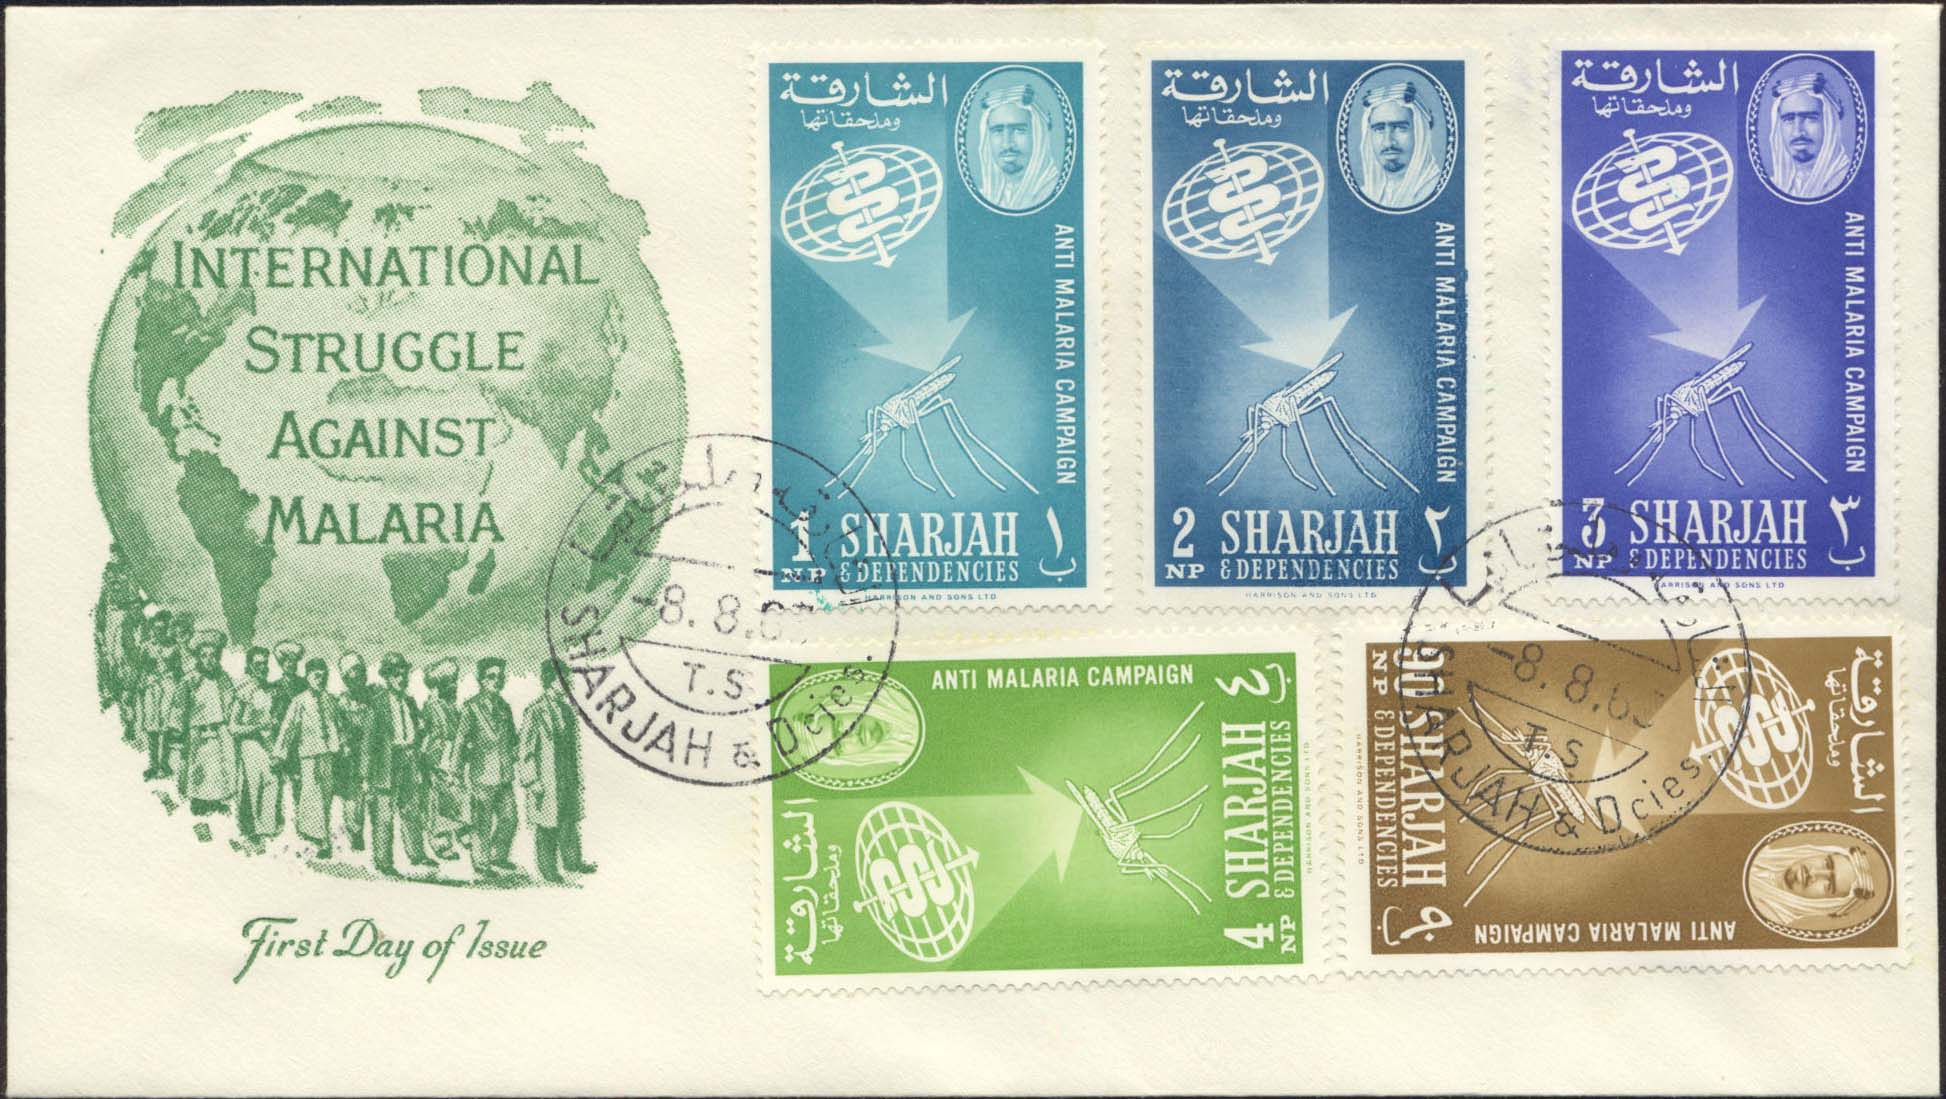 Sharjah And Dependencies Scott 16-20 (FDC w/ Counterfeit Artmaster Cachet (Green)